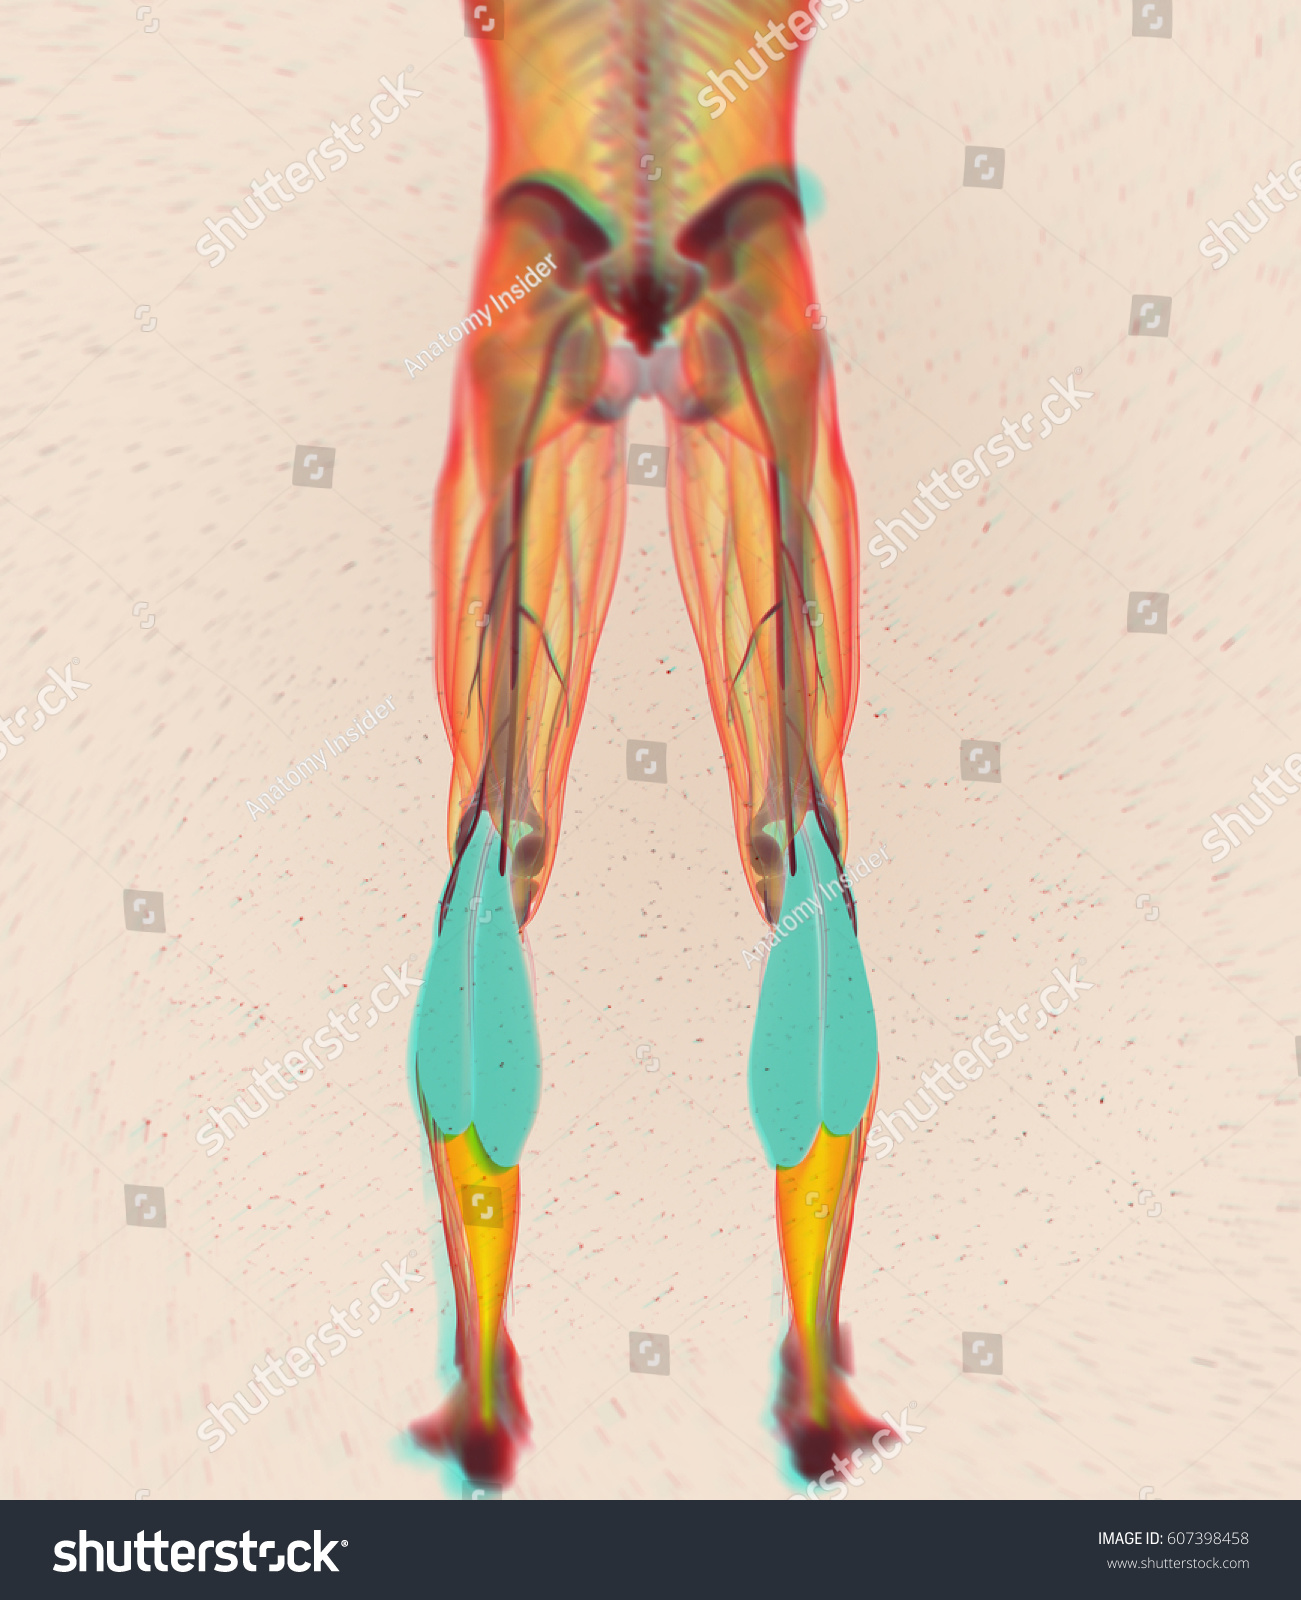 Royalty Free Stock Illustration Of Calf Muscles Human Anatomy